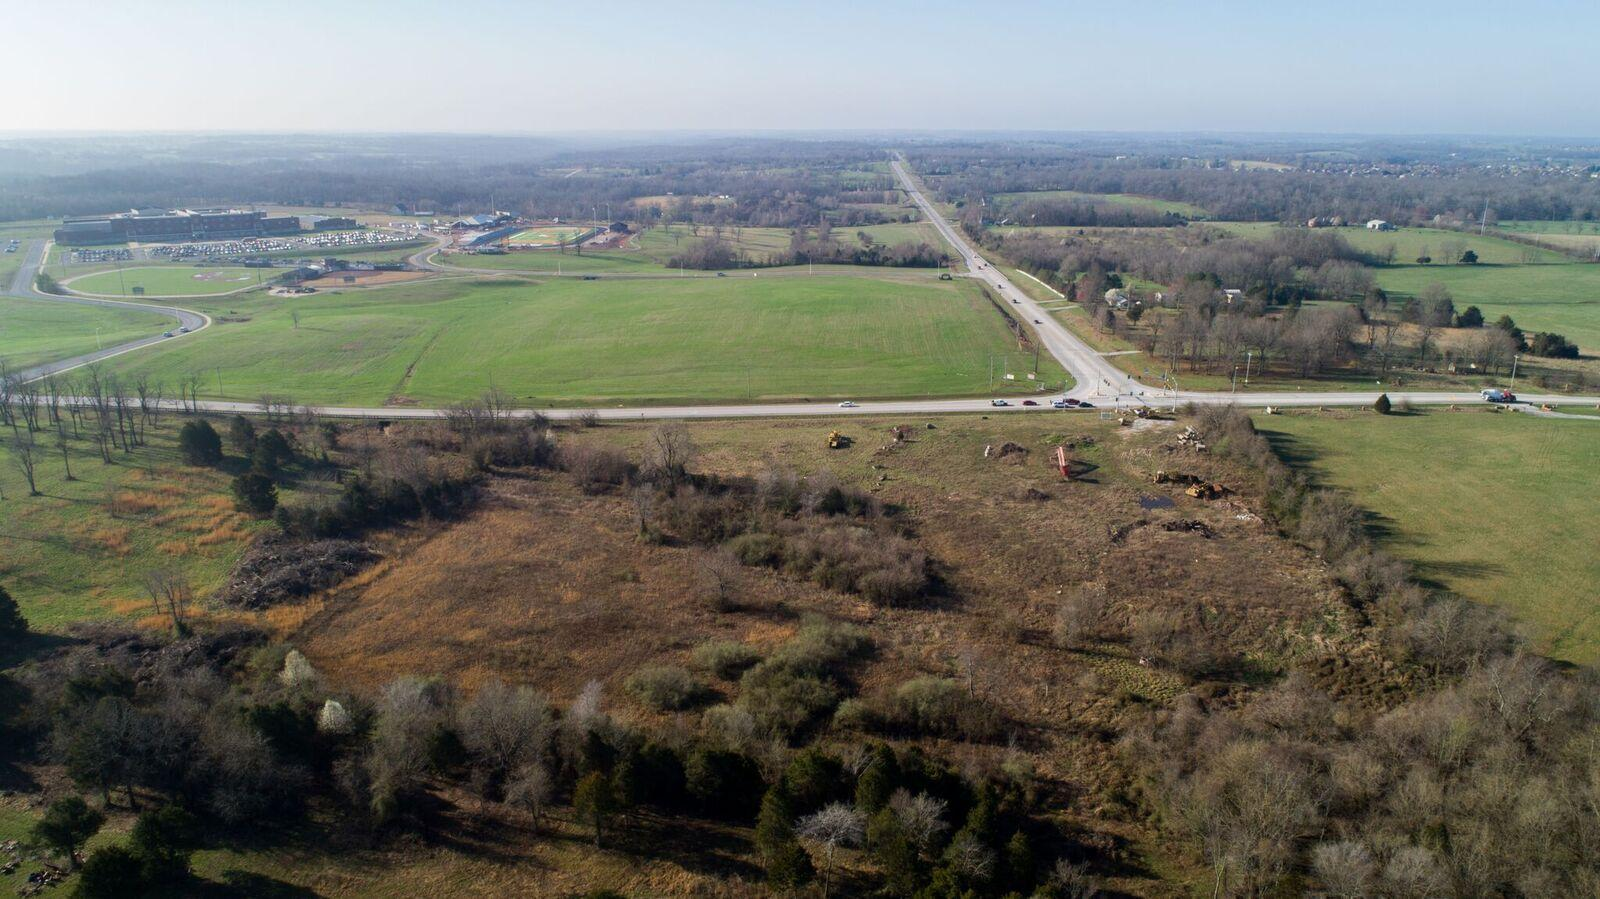 Tbd West Hwy M Republic, MO 65738